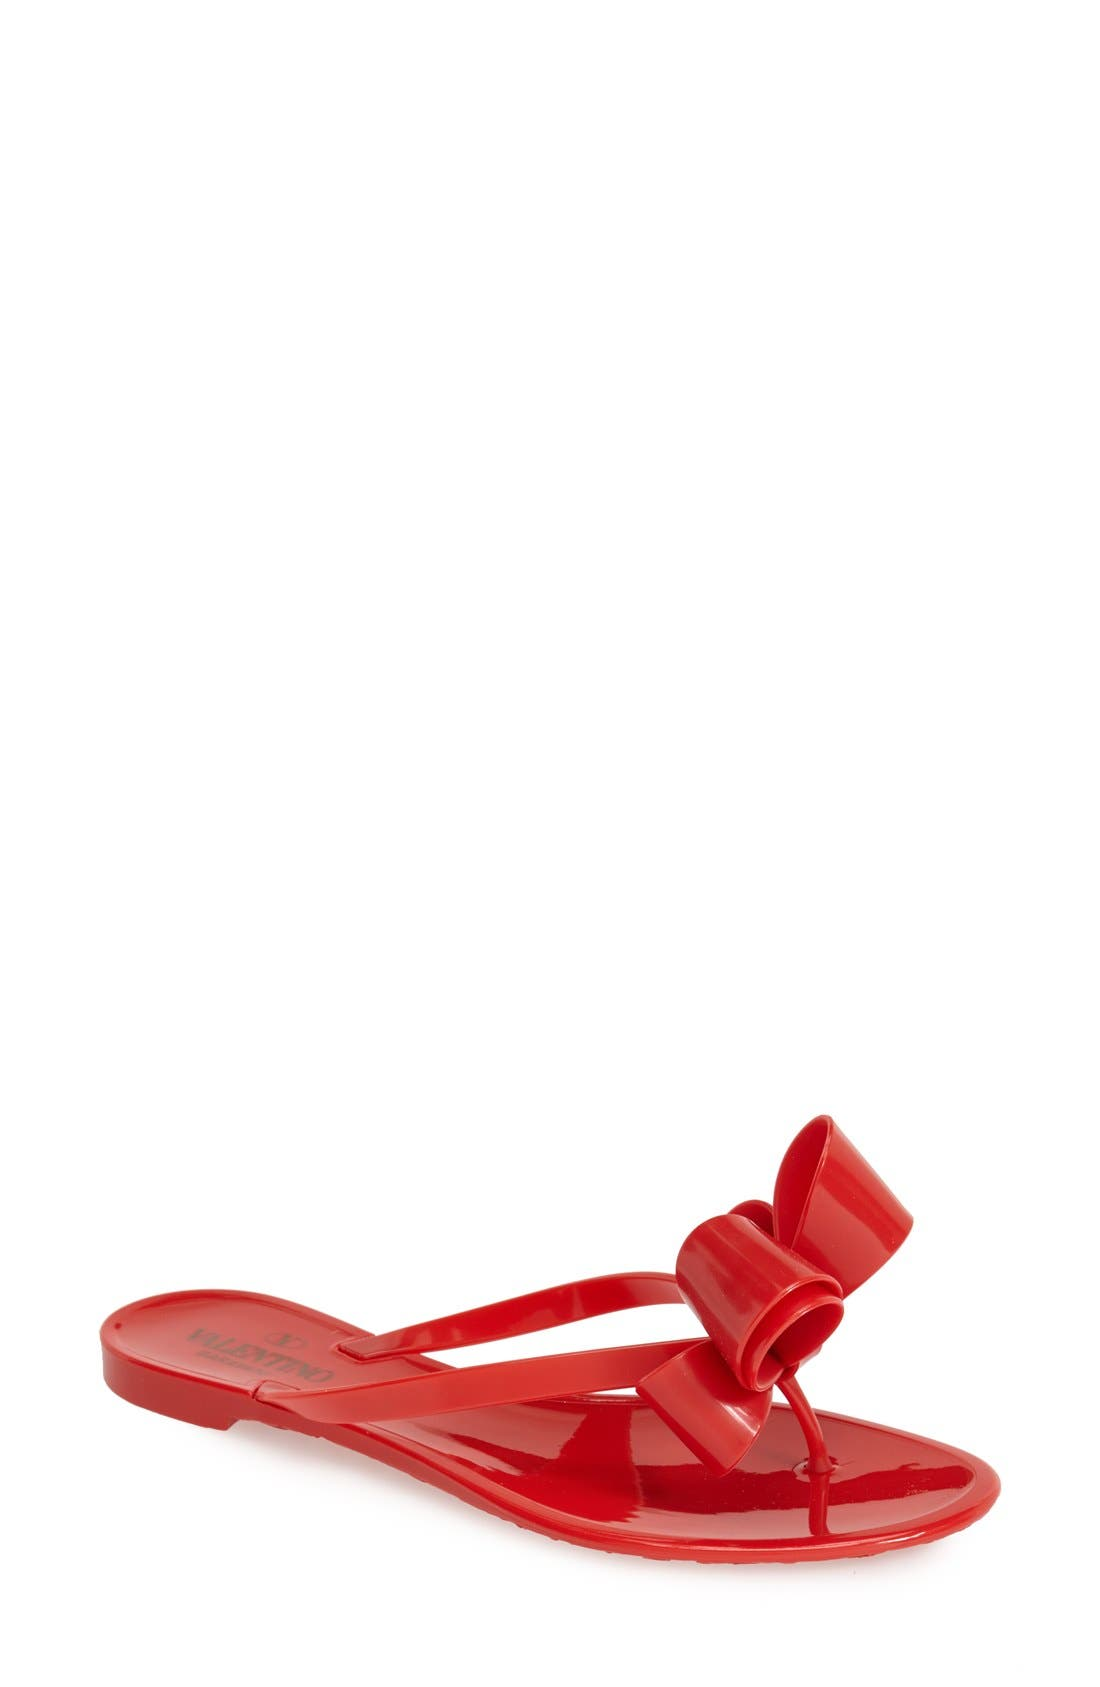 Alternate Image 1 Selected - Valentino Couture Bow Thong Sandal (Women)